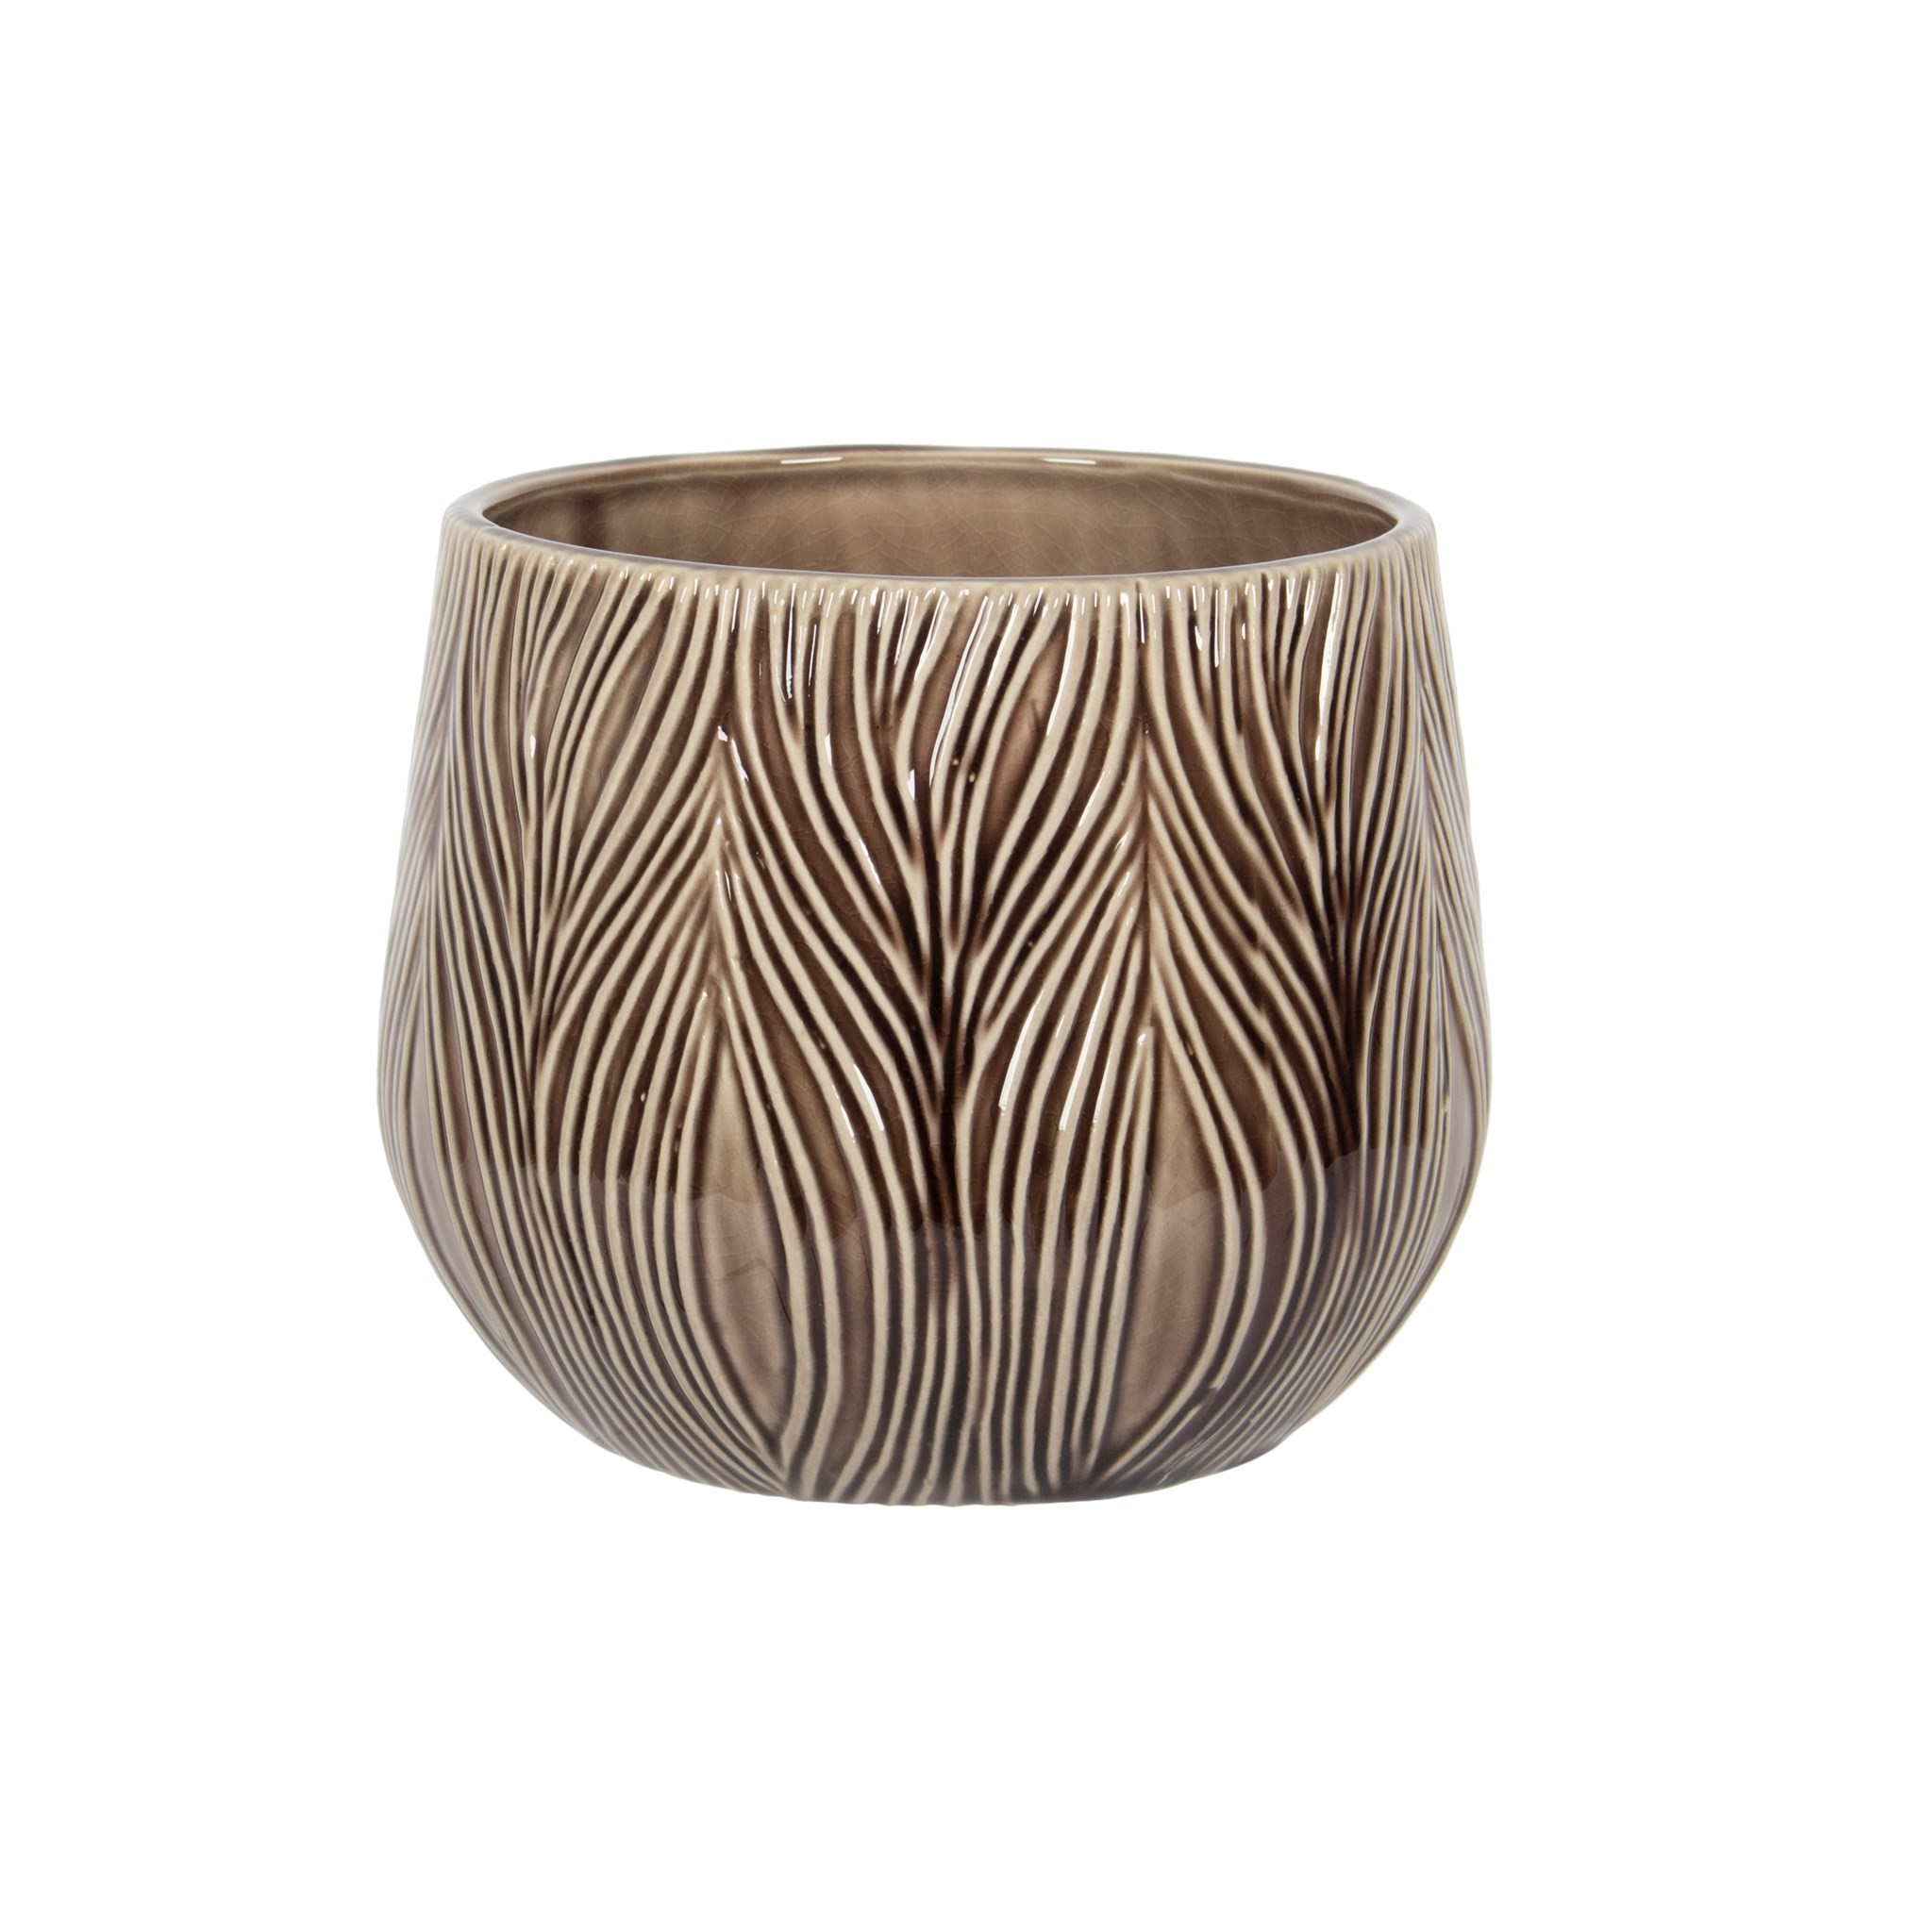 "5"" Ceramic Vase in Brown, Amanda's House Of Elegance  ($16.95)"